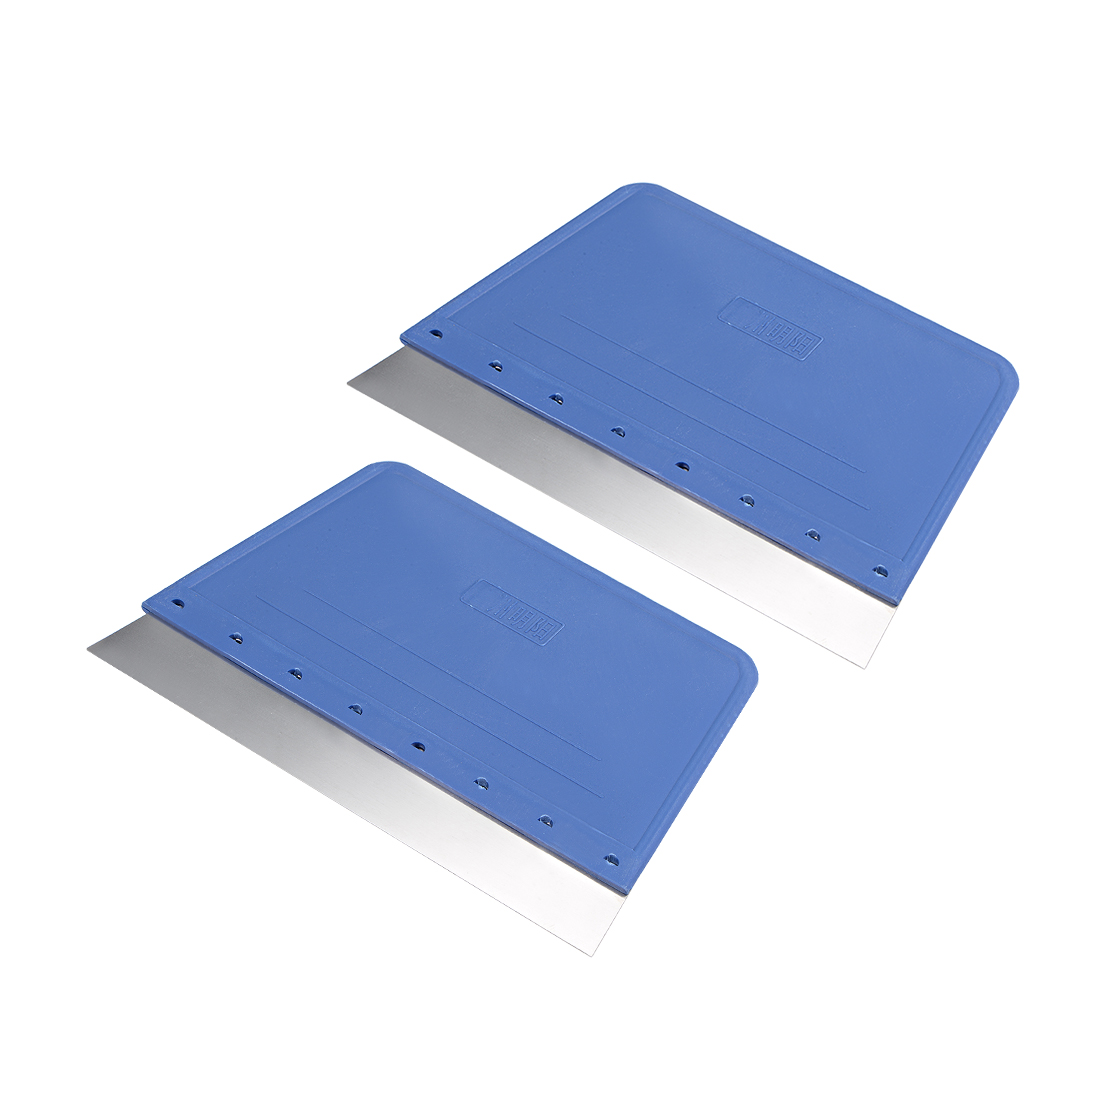 2x Scraper Board 173mm Carbon Steel Blade Plastic Handle Taping Surface Cleaning